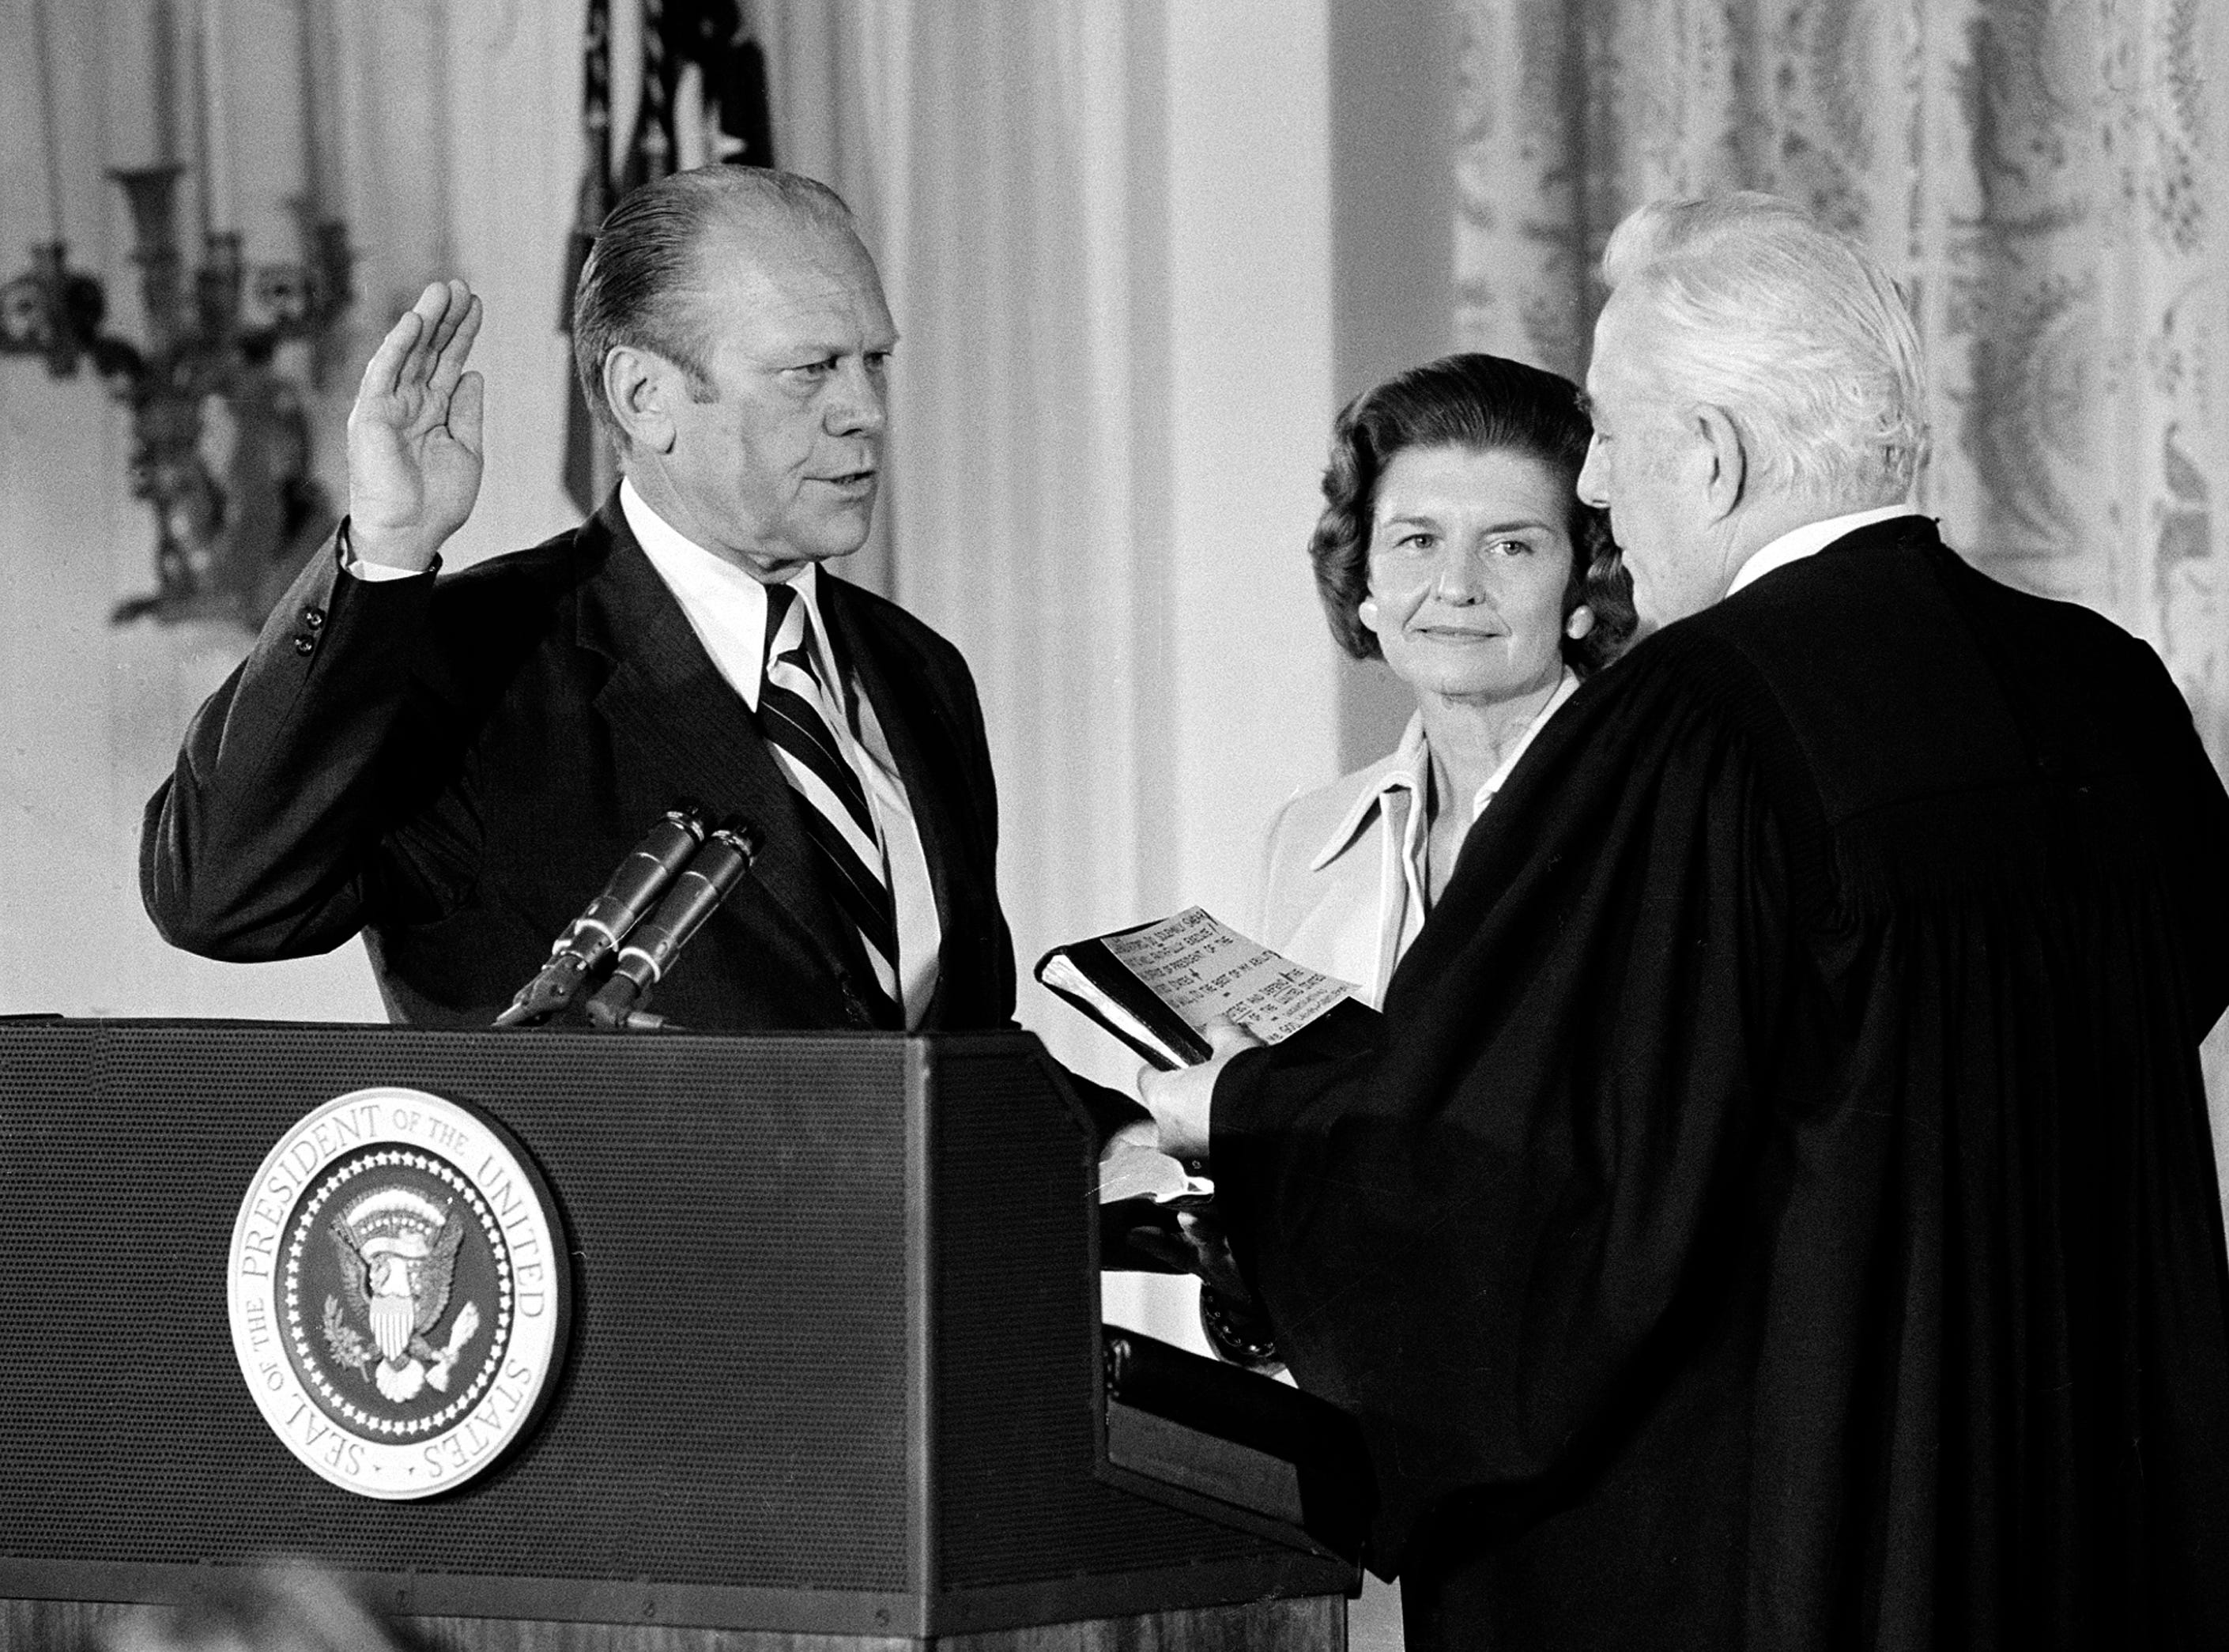 U.S. Chief Justice Warren Burger, right, administers the oath of office to Gerald R. Ford as the 38th President of the United States in the East Room of the White House in Washington, D.C., Aug. 9, 1974. Betty Ford holds the bible at center. Gerald R. Ford, who picked up the pieces of Richard Nixon's scandal-shattered White House as the 38th and only unelected president in America's history